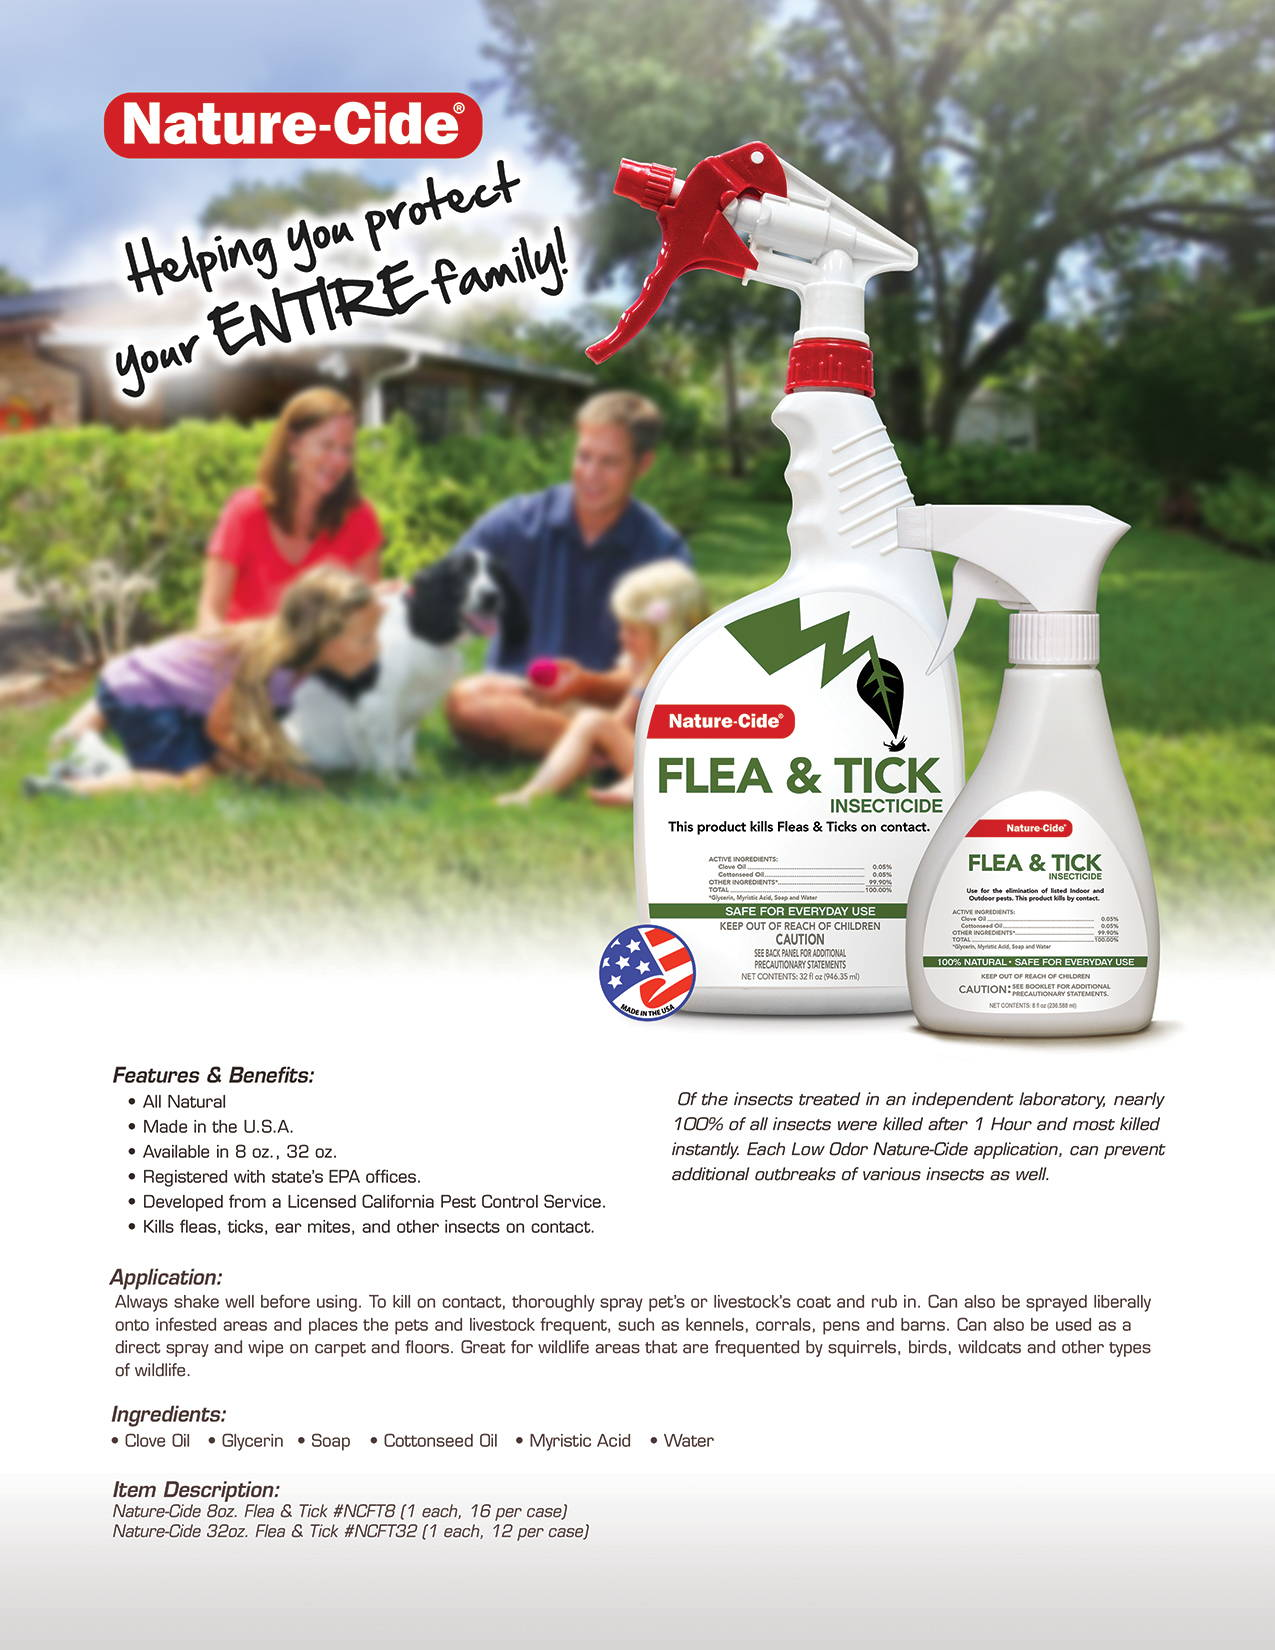 Nature-Cide Flea and Tick Product Info